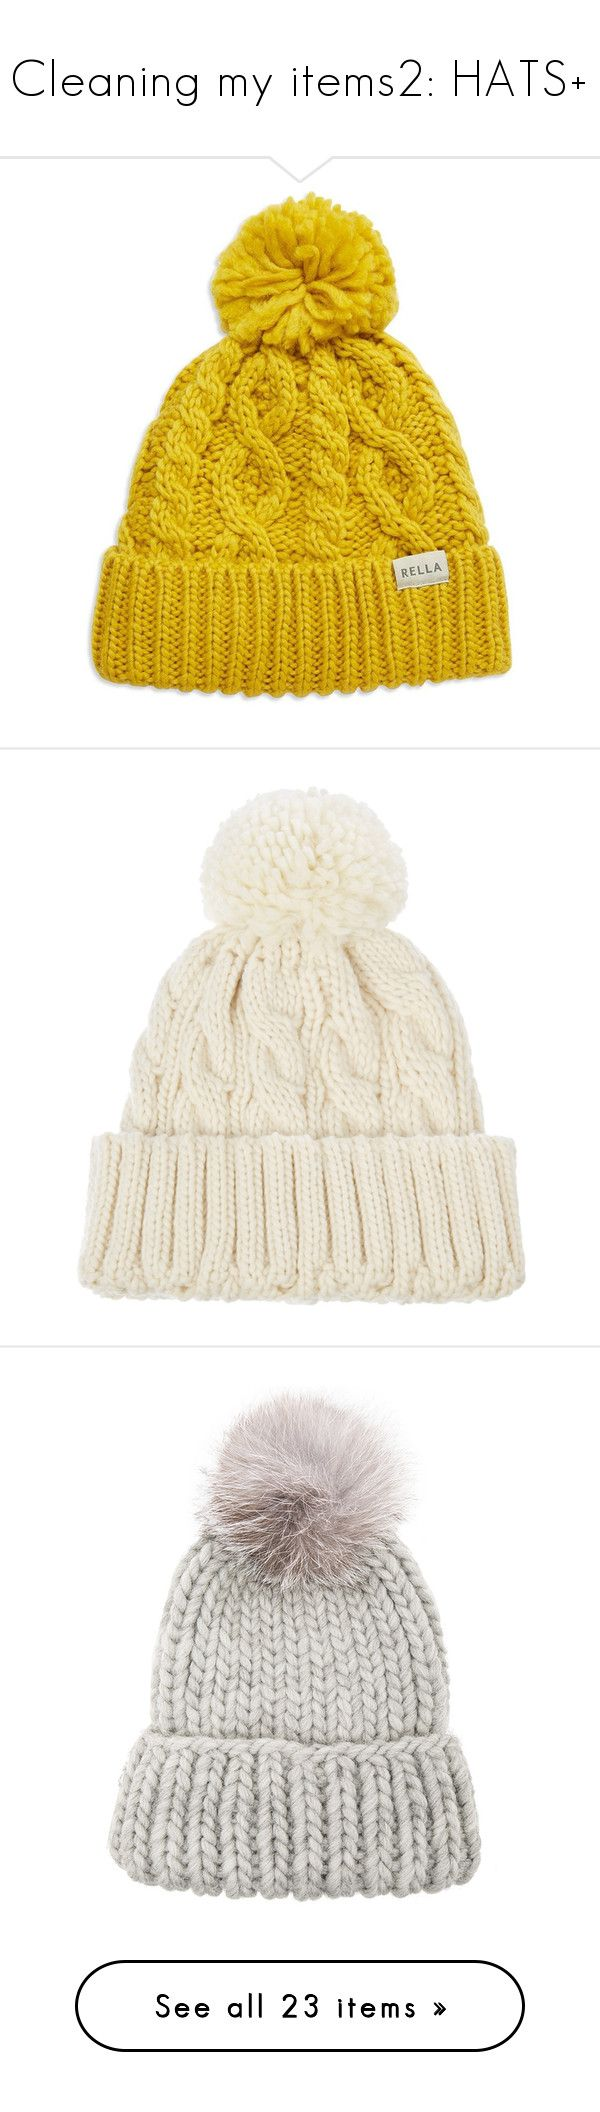 """Cleaning my items2: HATS+"" by emilypondng ❤ liked on Polyvore featuring accessories, hats, beanies, yellow, pom pom hat, pom pom beanie hat, yellow hat, cable beanie, yellow beanie and beanie"